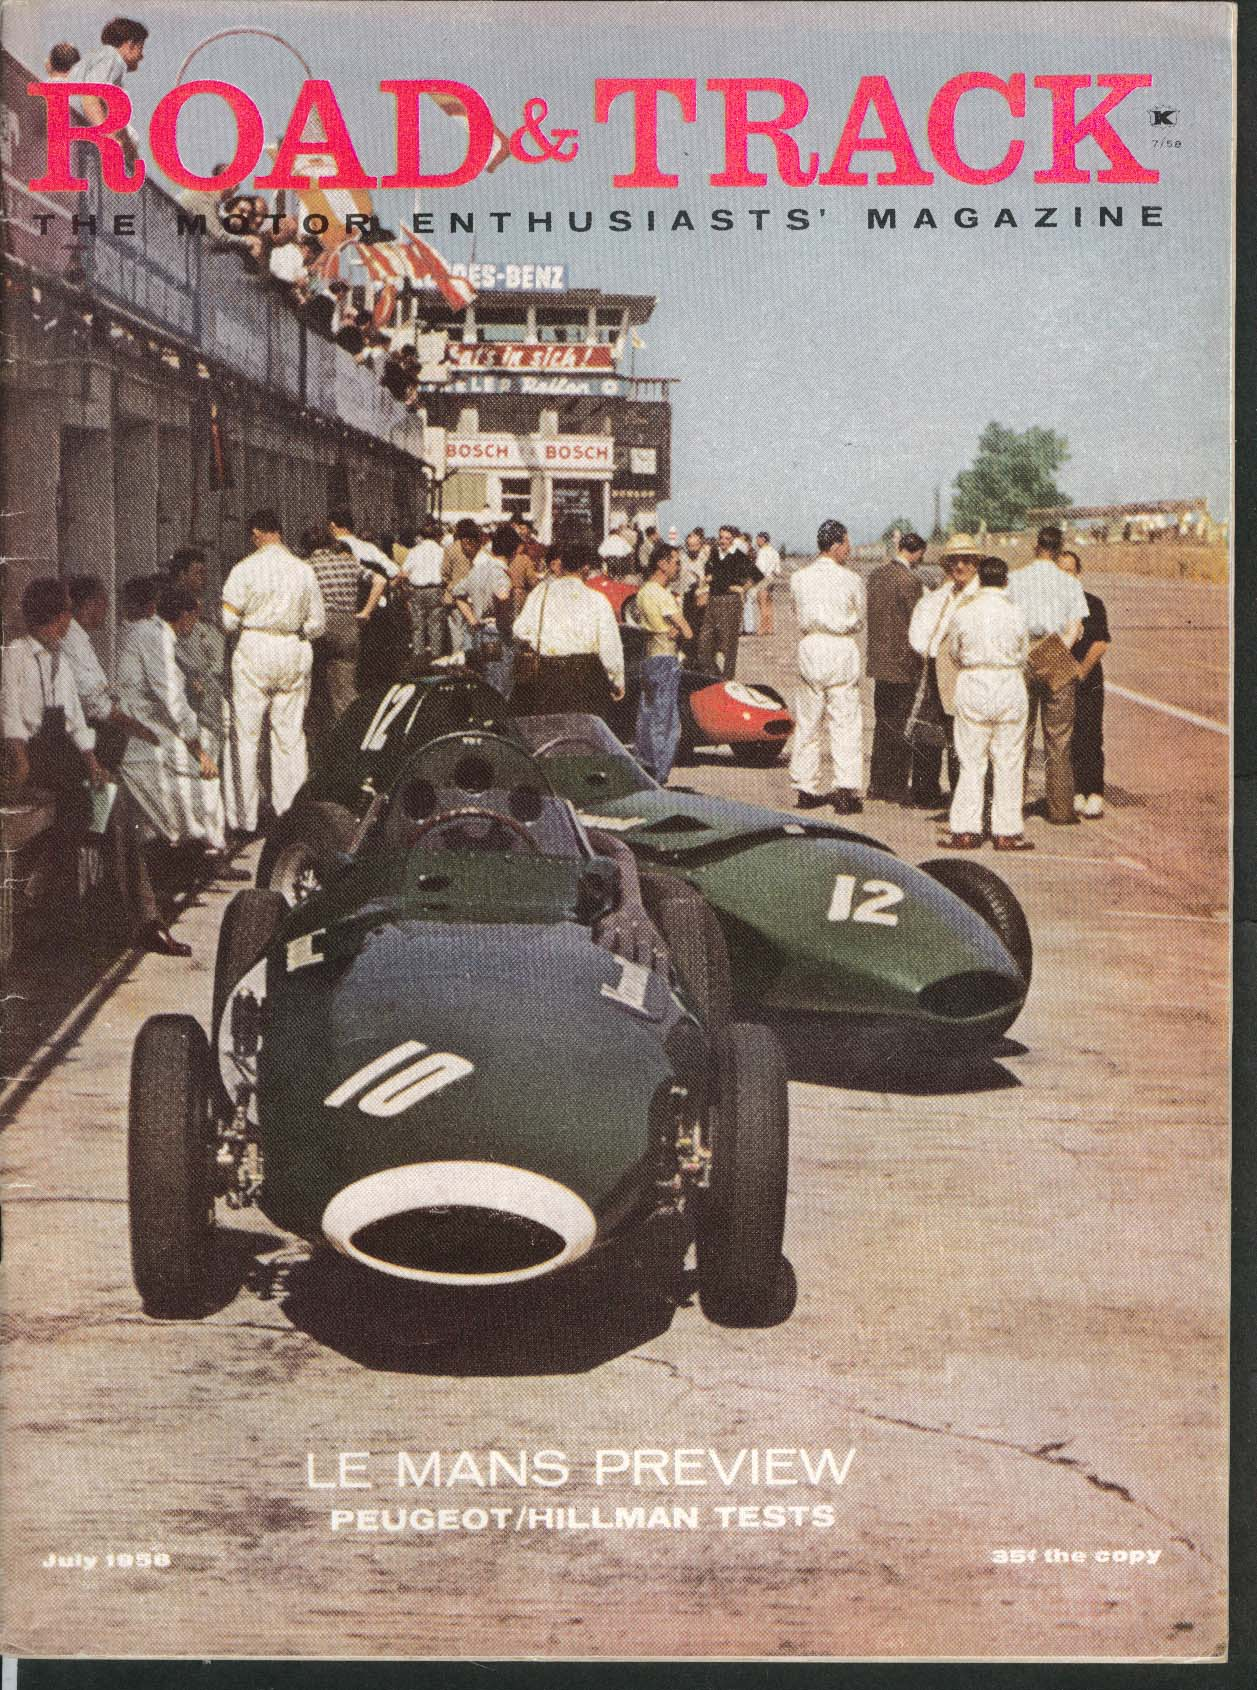 Image for ROAD & TRACK Le Mans Preview Peugeot 403 Hillman Road Tests Maserati ++ 7 1958